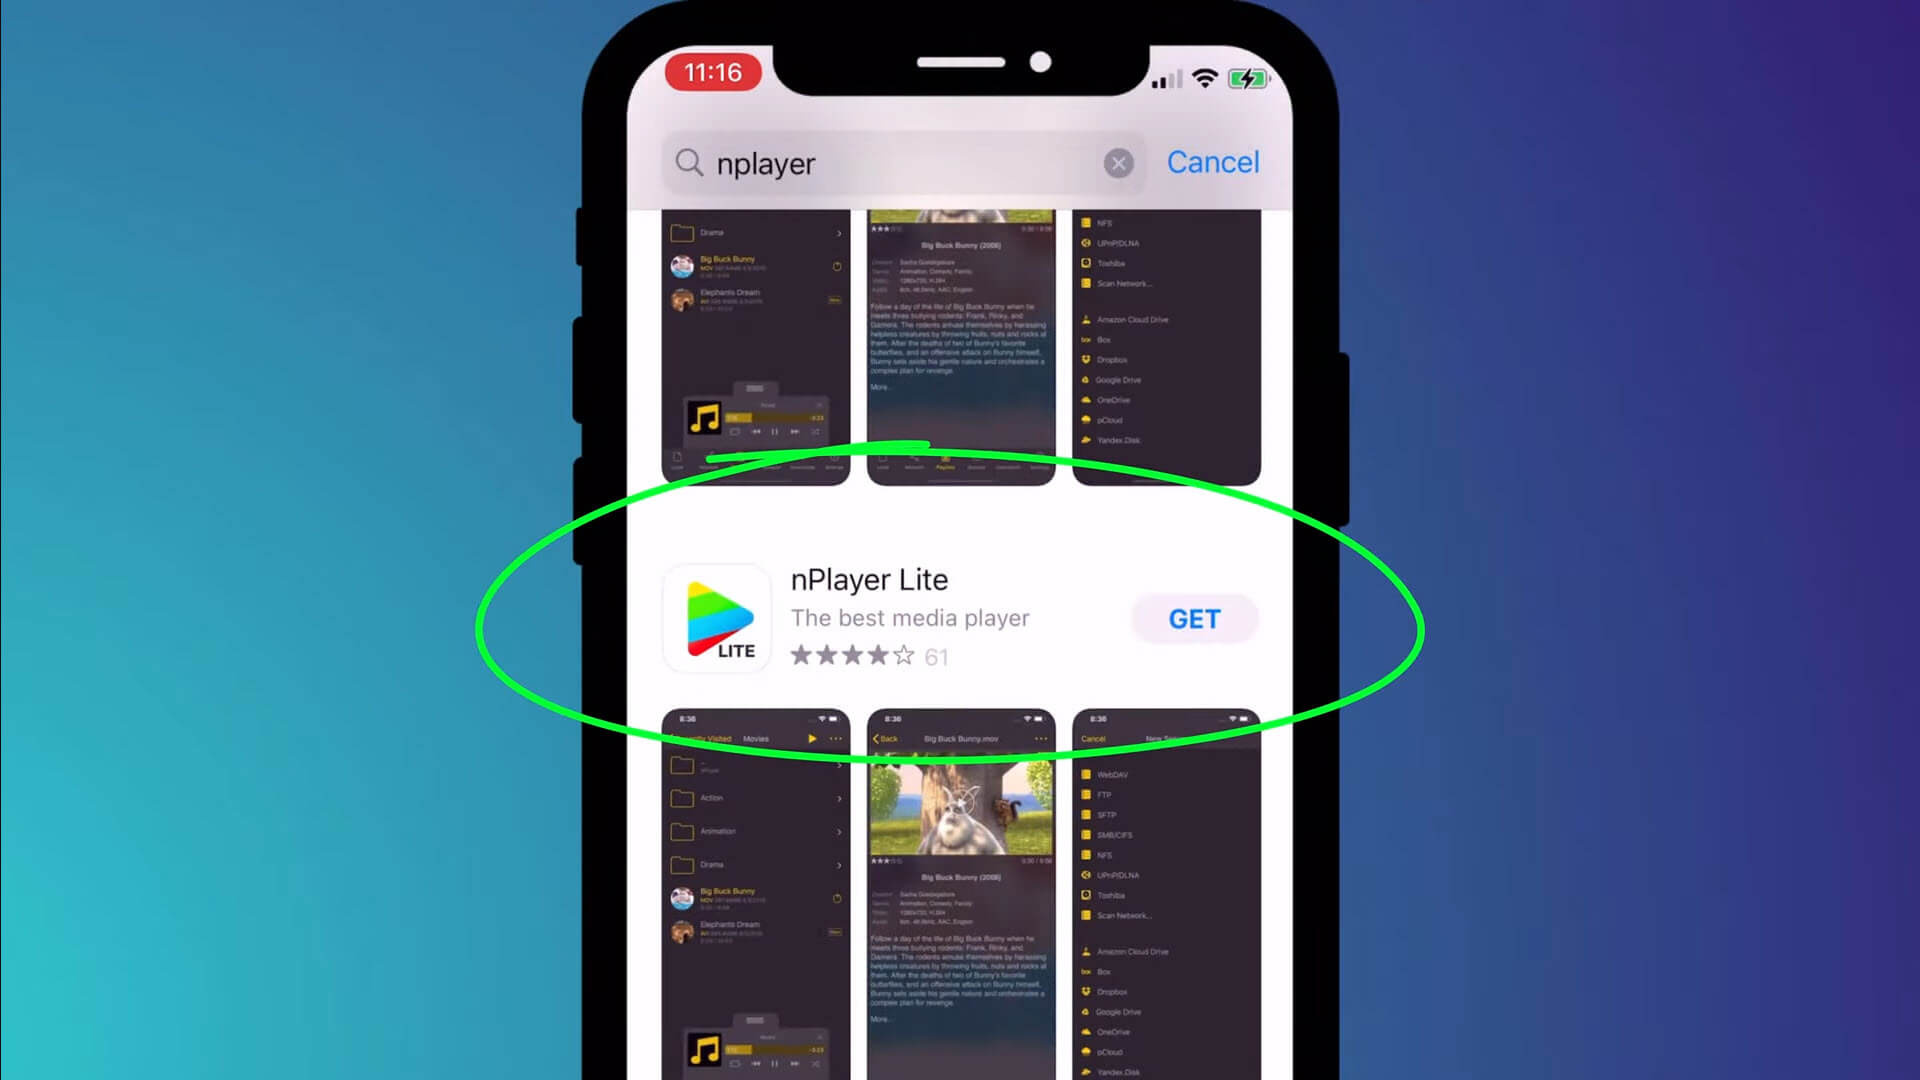 nPlayer Lite in the app store